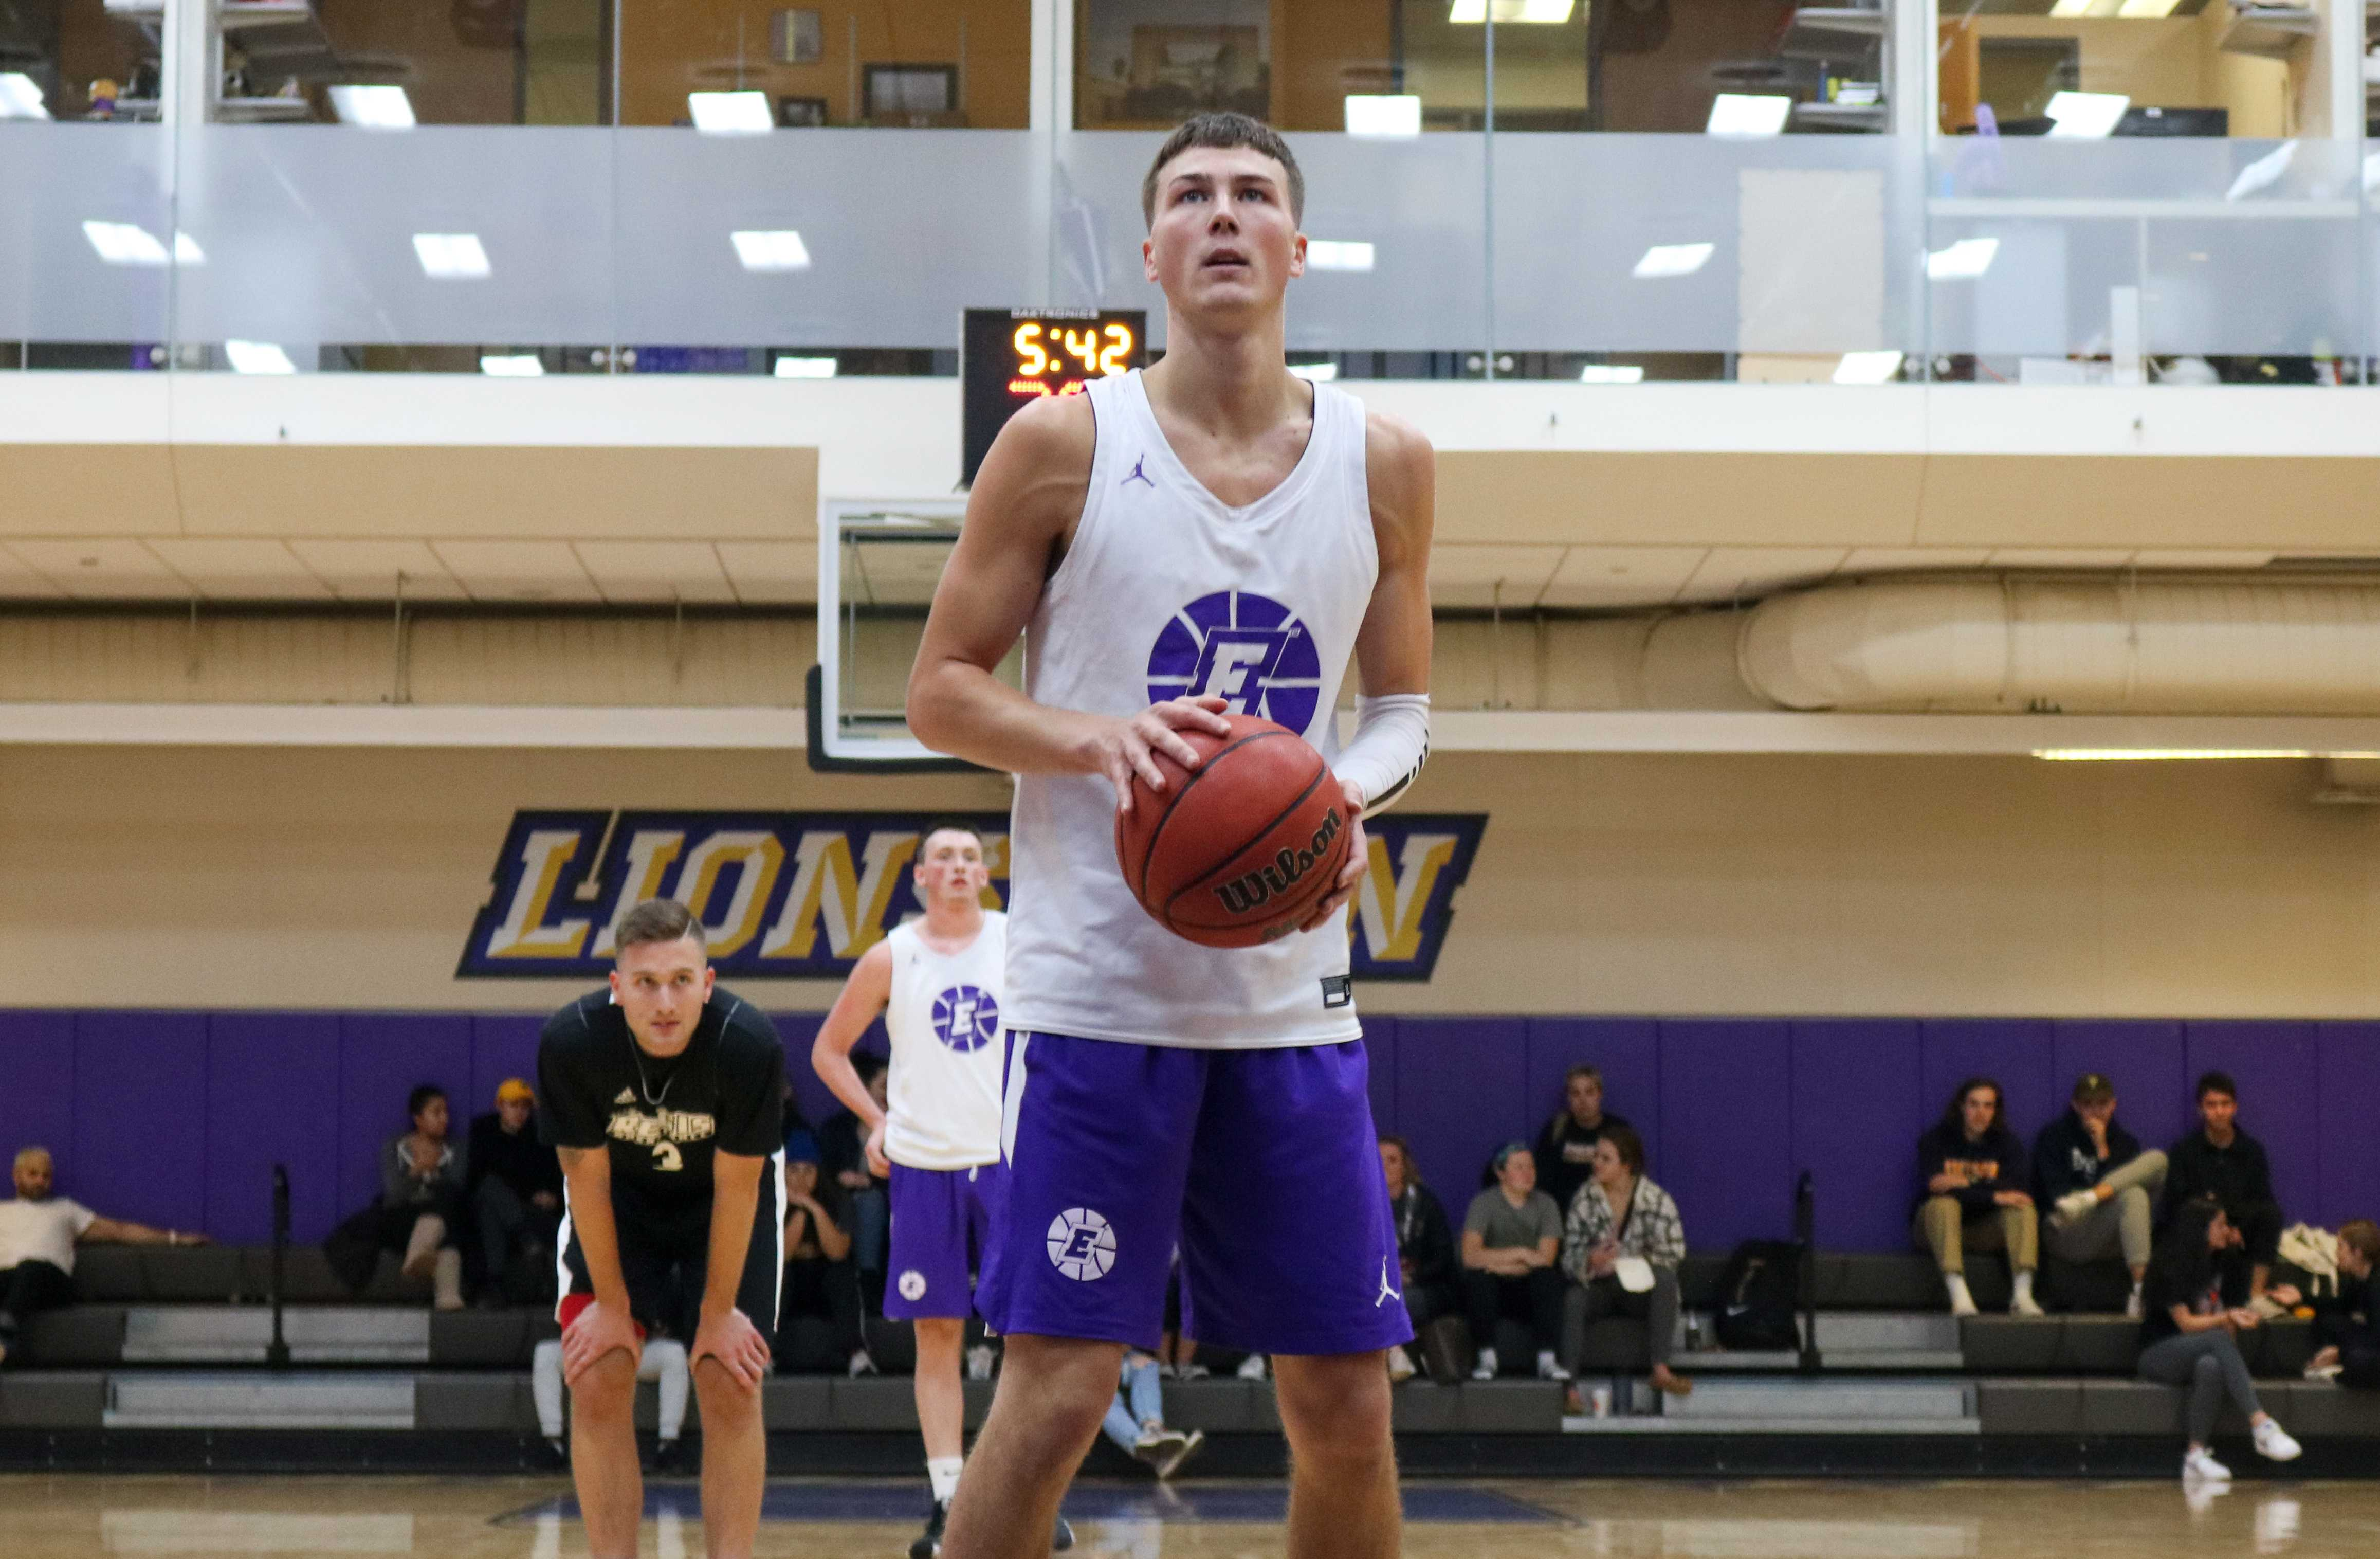 Senior Jack O'Connor scored 17 points with 40 percent shooting from the field in the Lions' scrimmage against Regis College. Aaron J. Miller / Beacon Staff